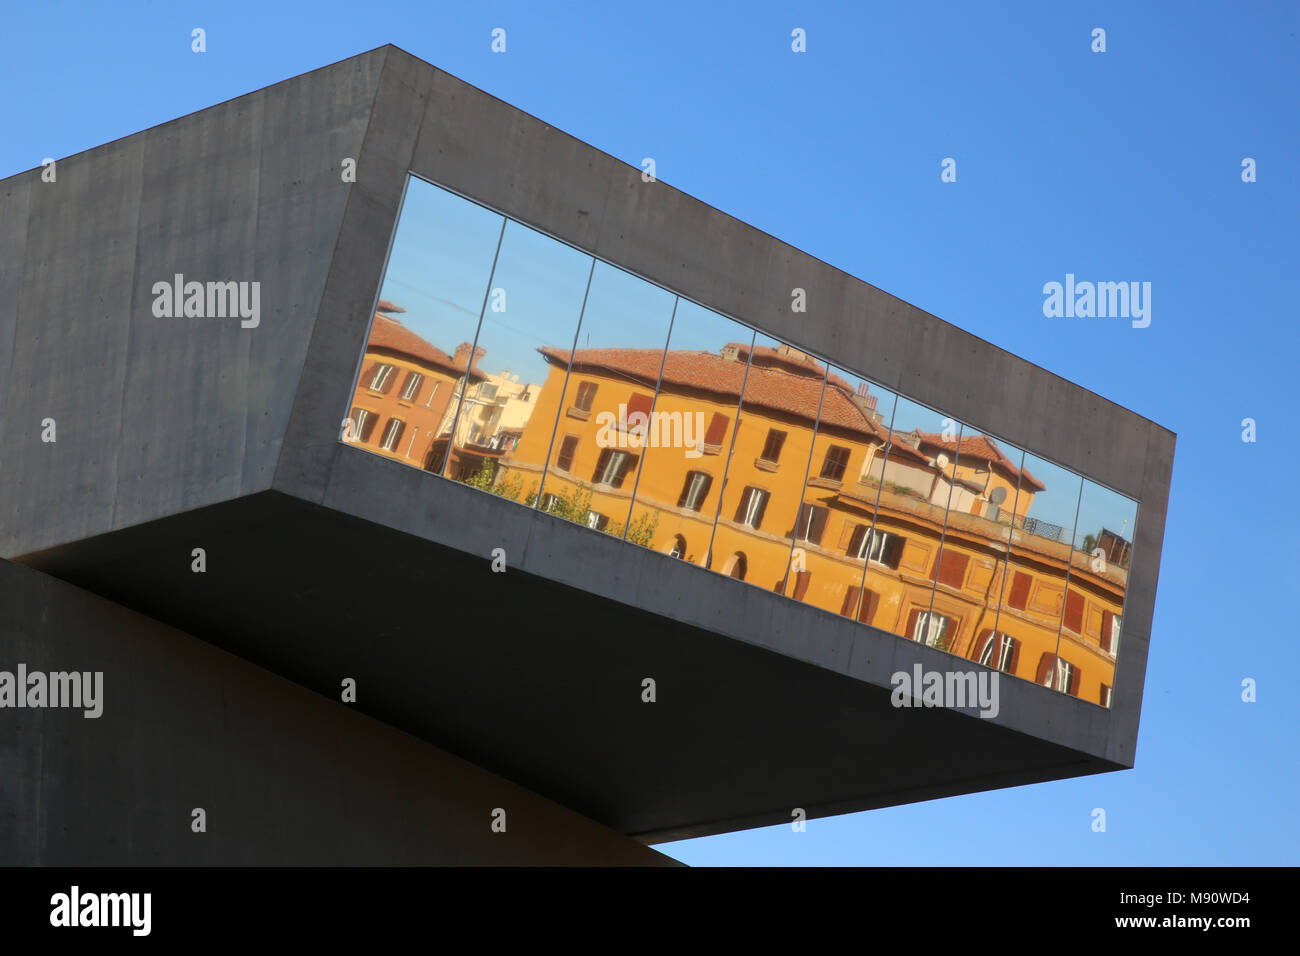 MAXXI, National museum of 21st century Art, Rome. Italy. - Stock Image